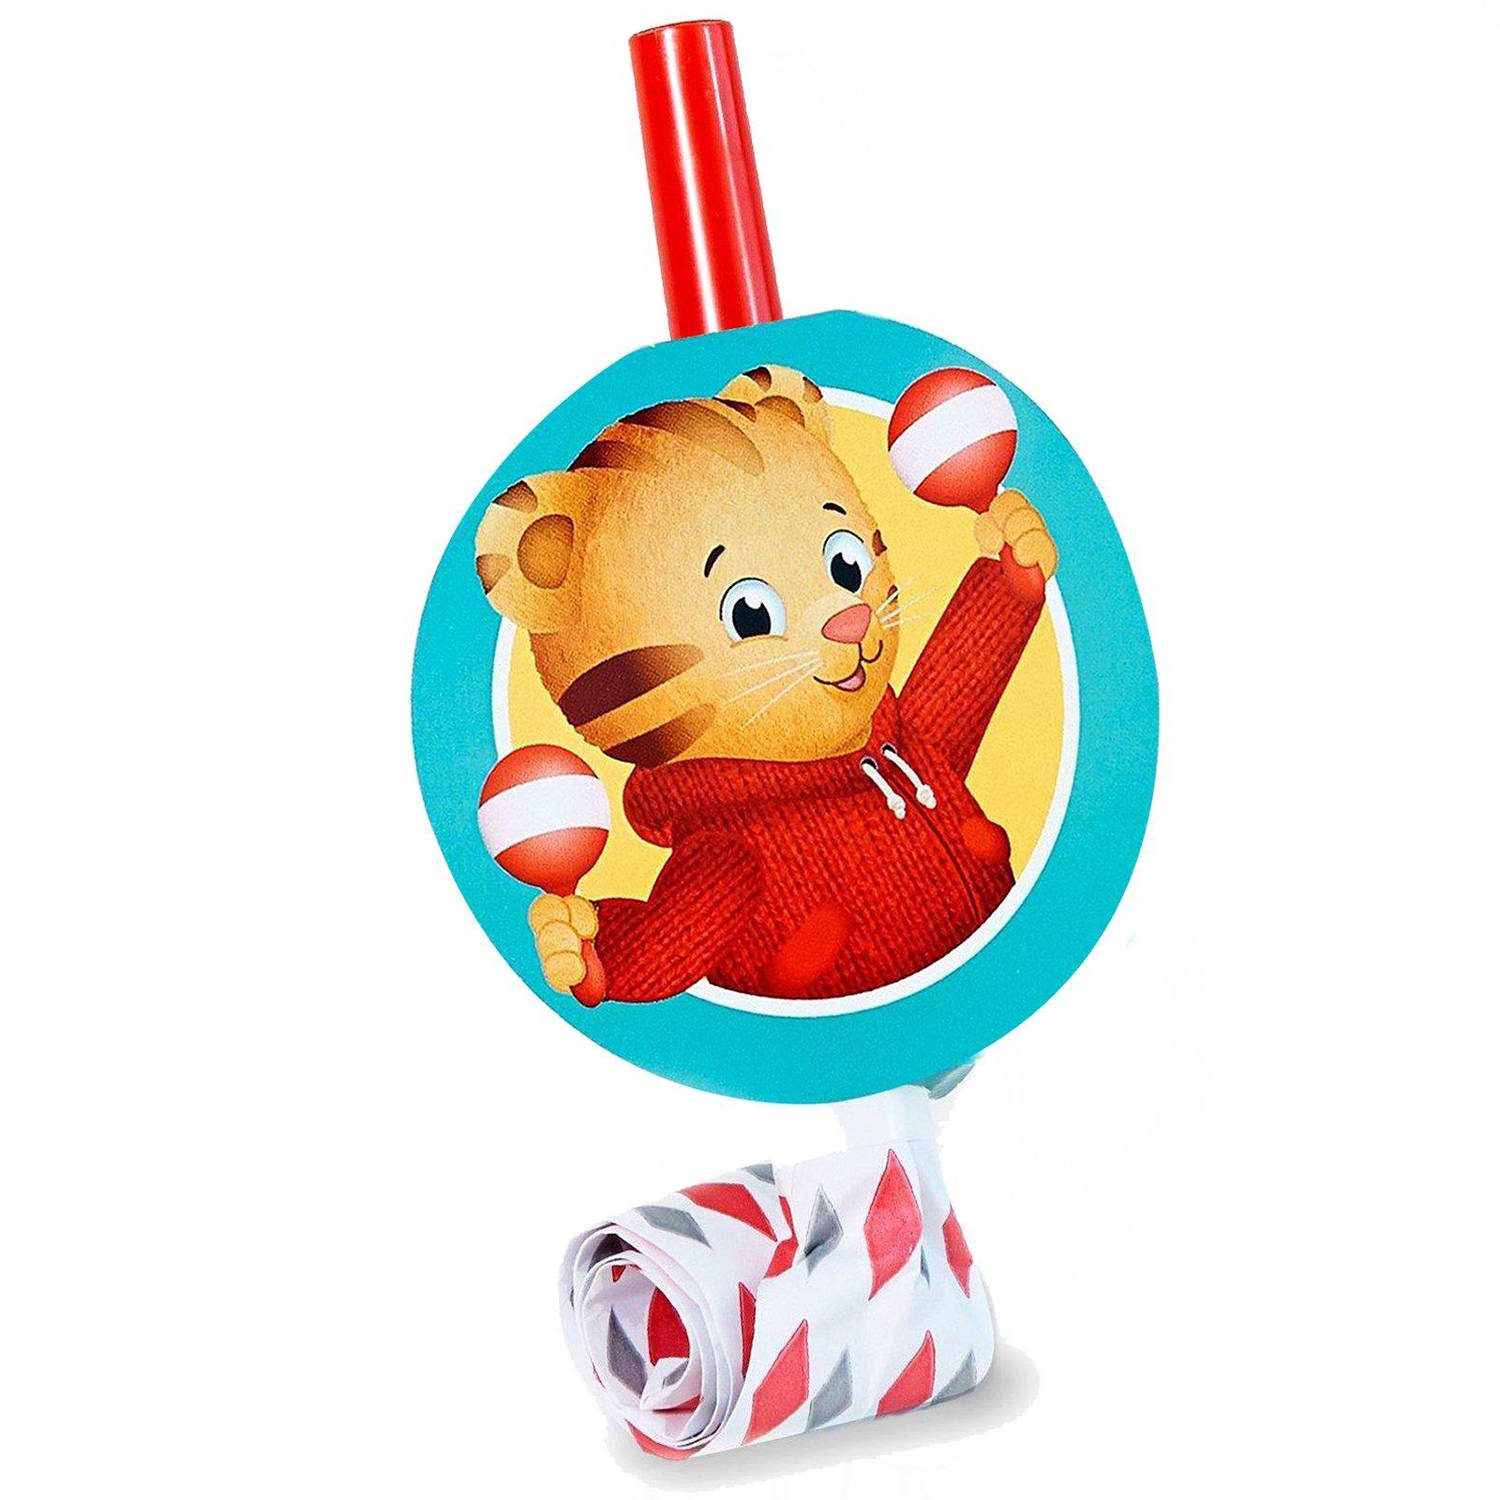 Daniel Tiger's Neighborhood Blowouts, 8-Pack